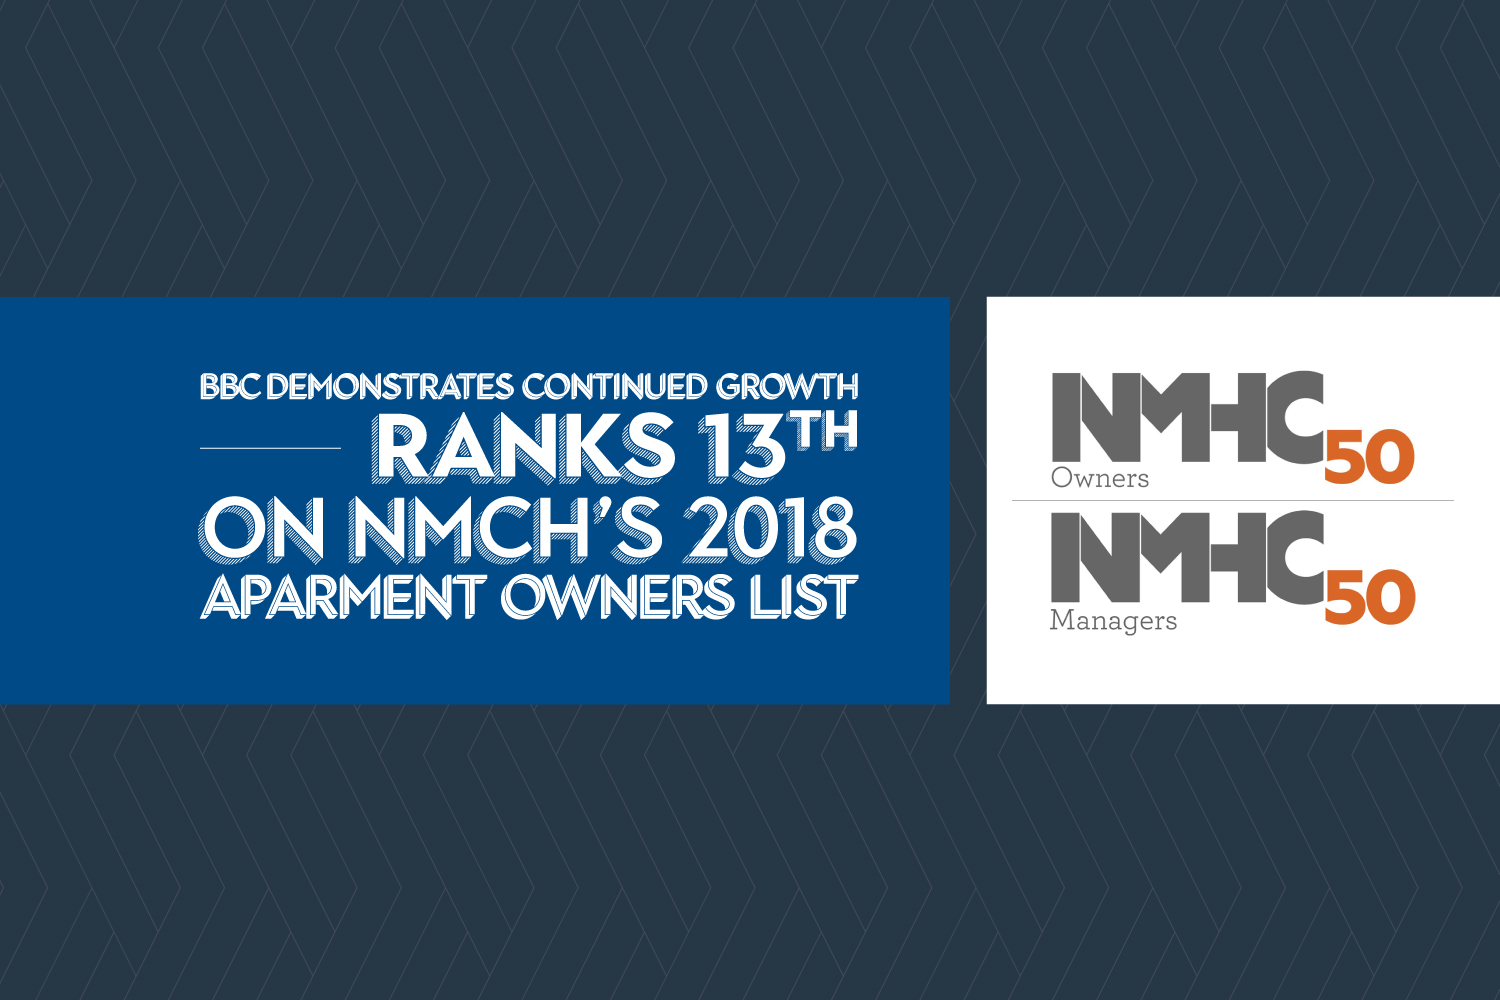 Balfour Beatty Communities demonstrates continued growth, ranks 13th on NMHC's 2018 Top 50 Apartment Owners List